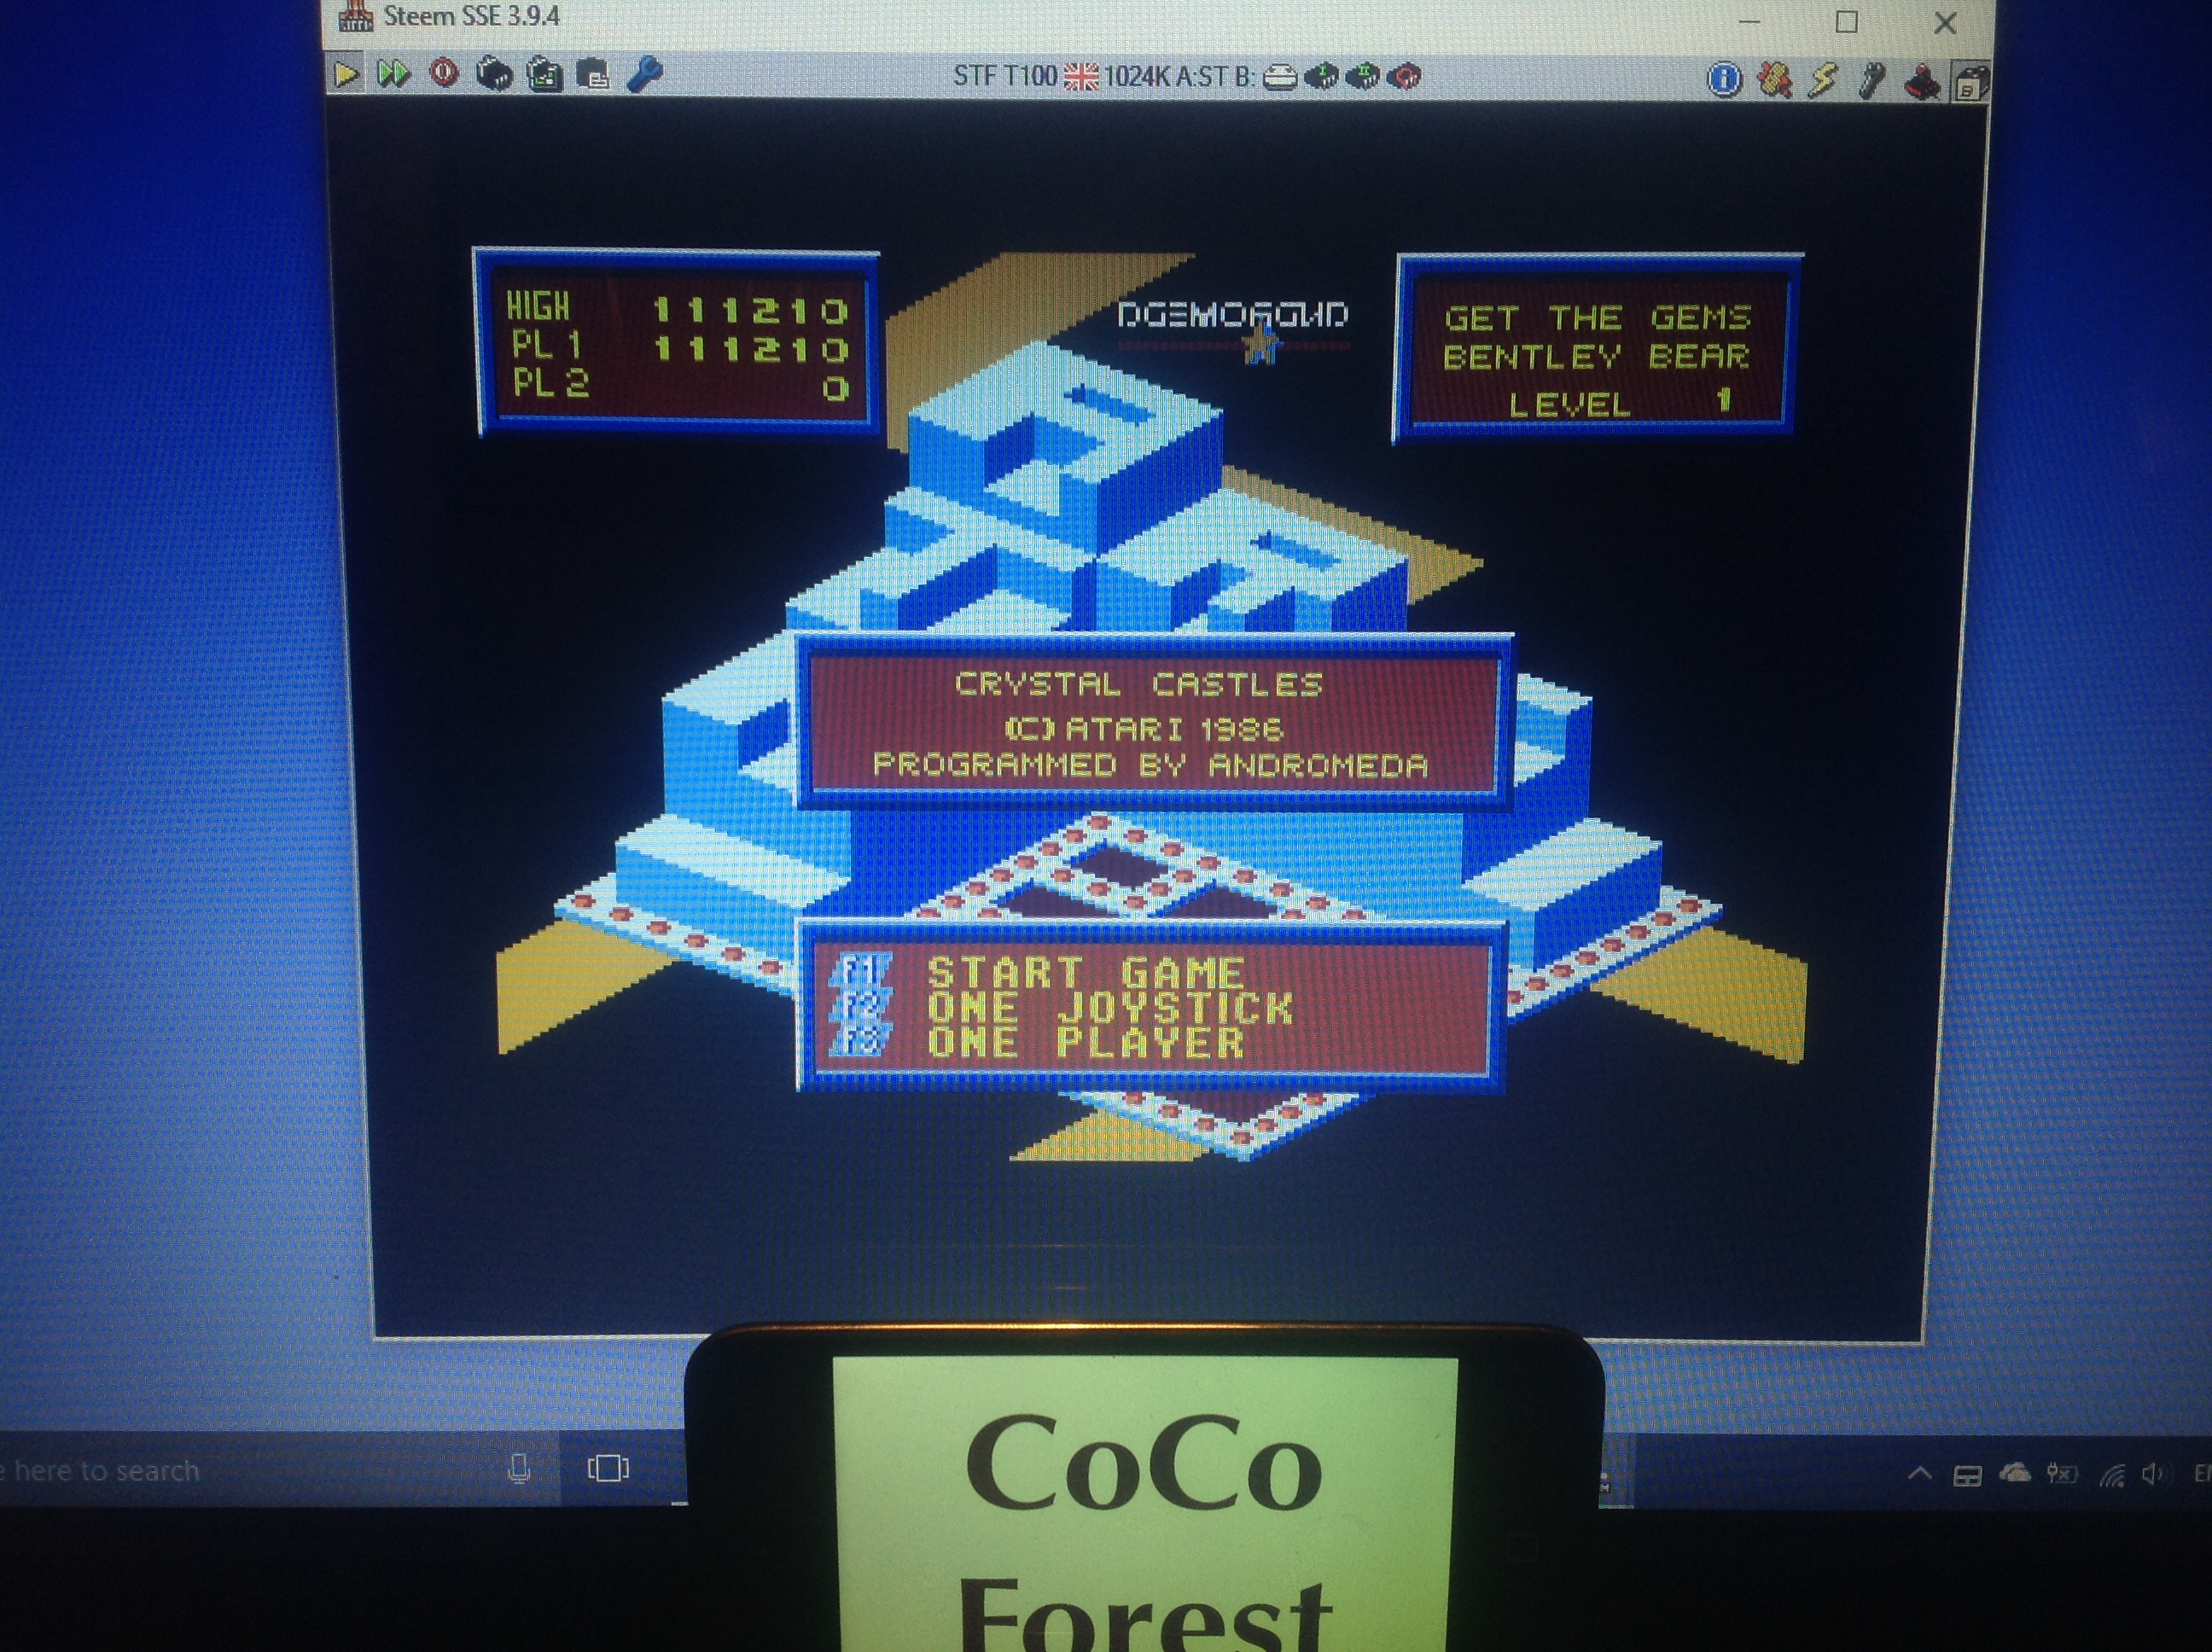 CoCoForest: Crystal Castles (Atari ST Emulated) 111,210 points on 2018-01-29 13:10:04